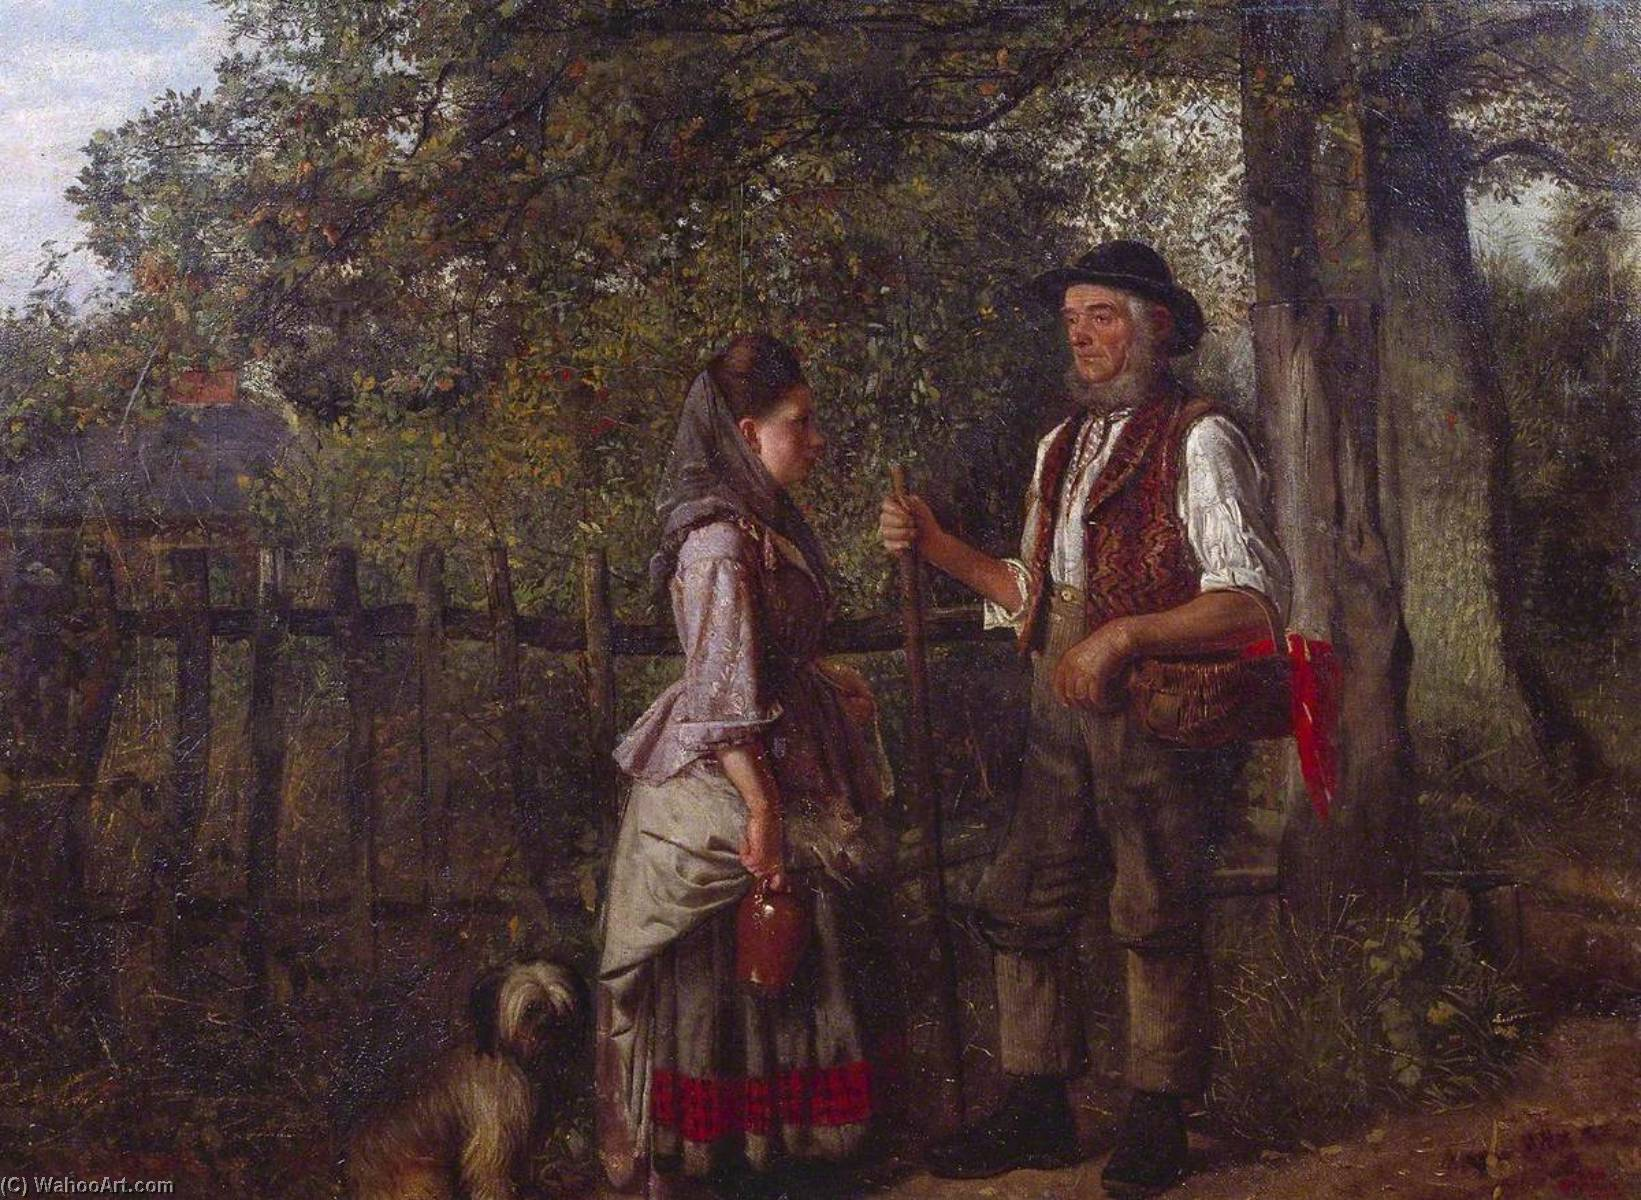 Wikioo.org - The Encyclopedia of Fine Arts - Painting, Artwork by William Edward Millner - A Wayside Gossip